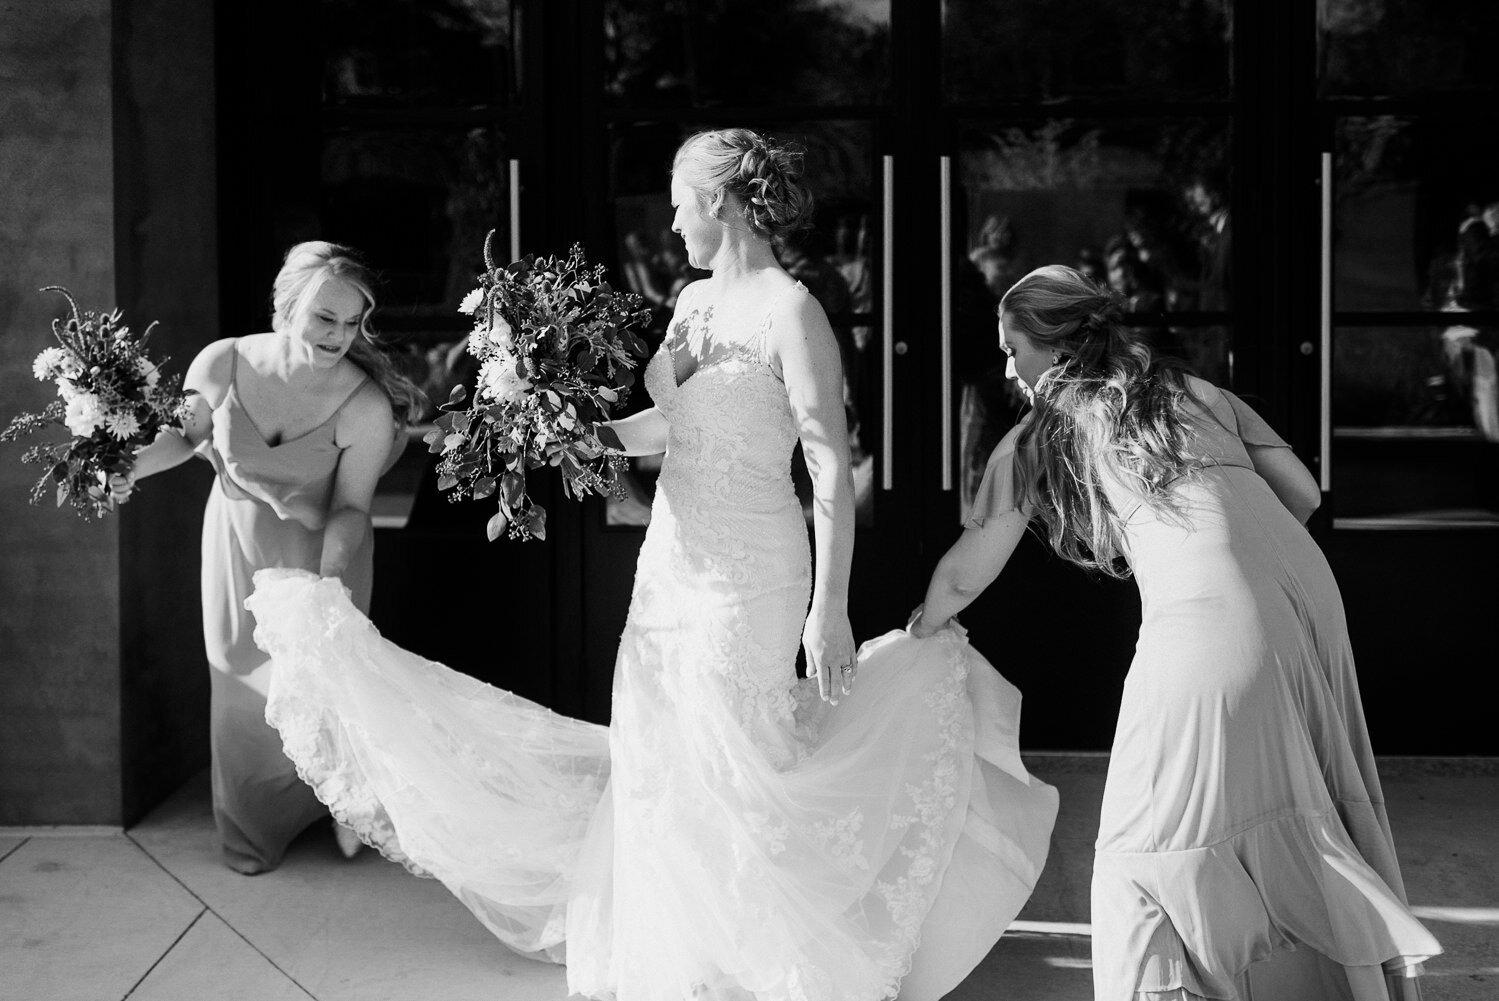 clementine-nashville-wedding-26